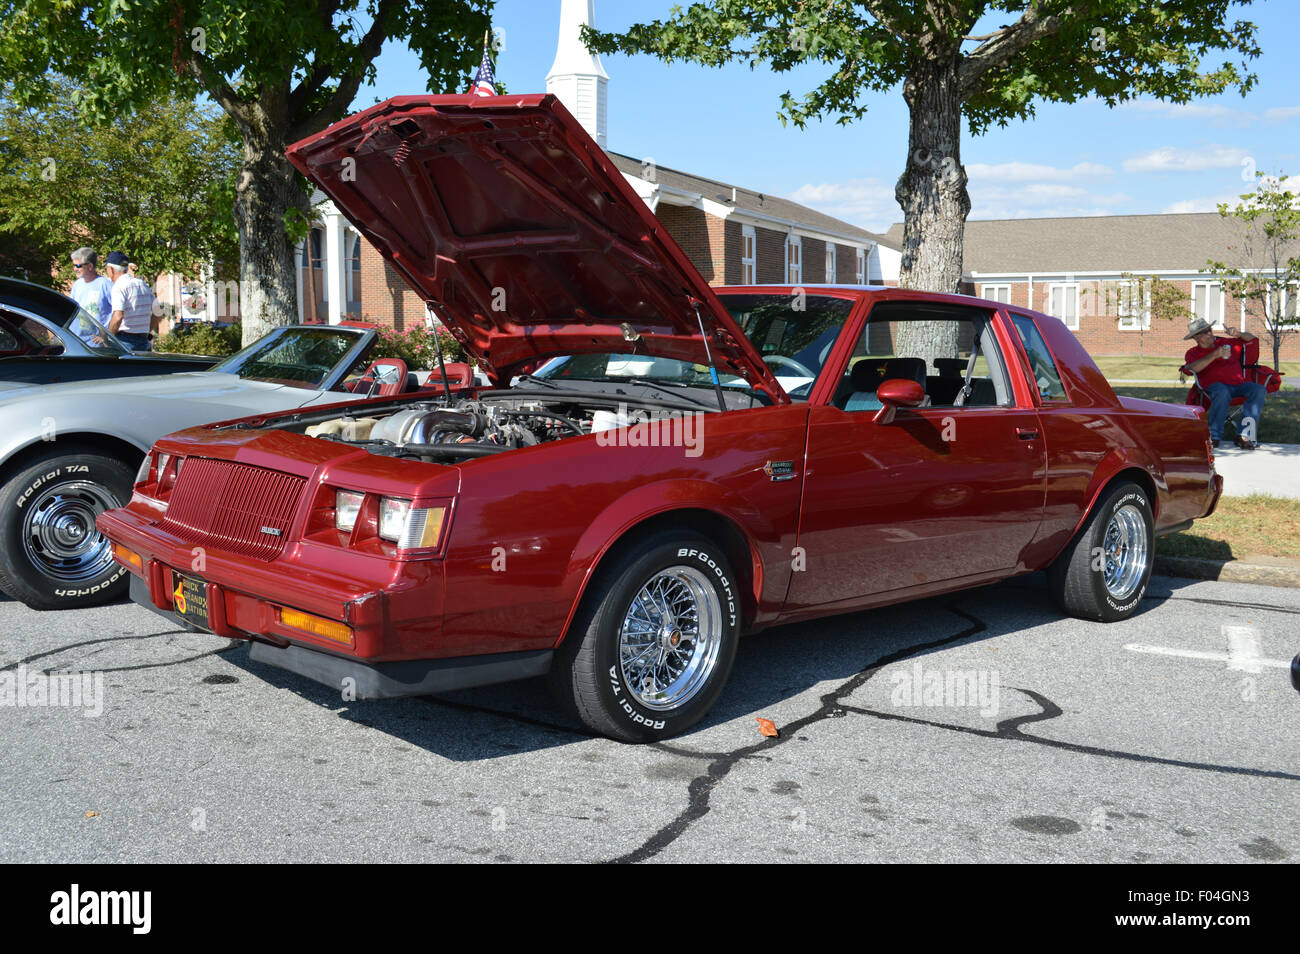 A vintage buick grand national car stock image